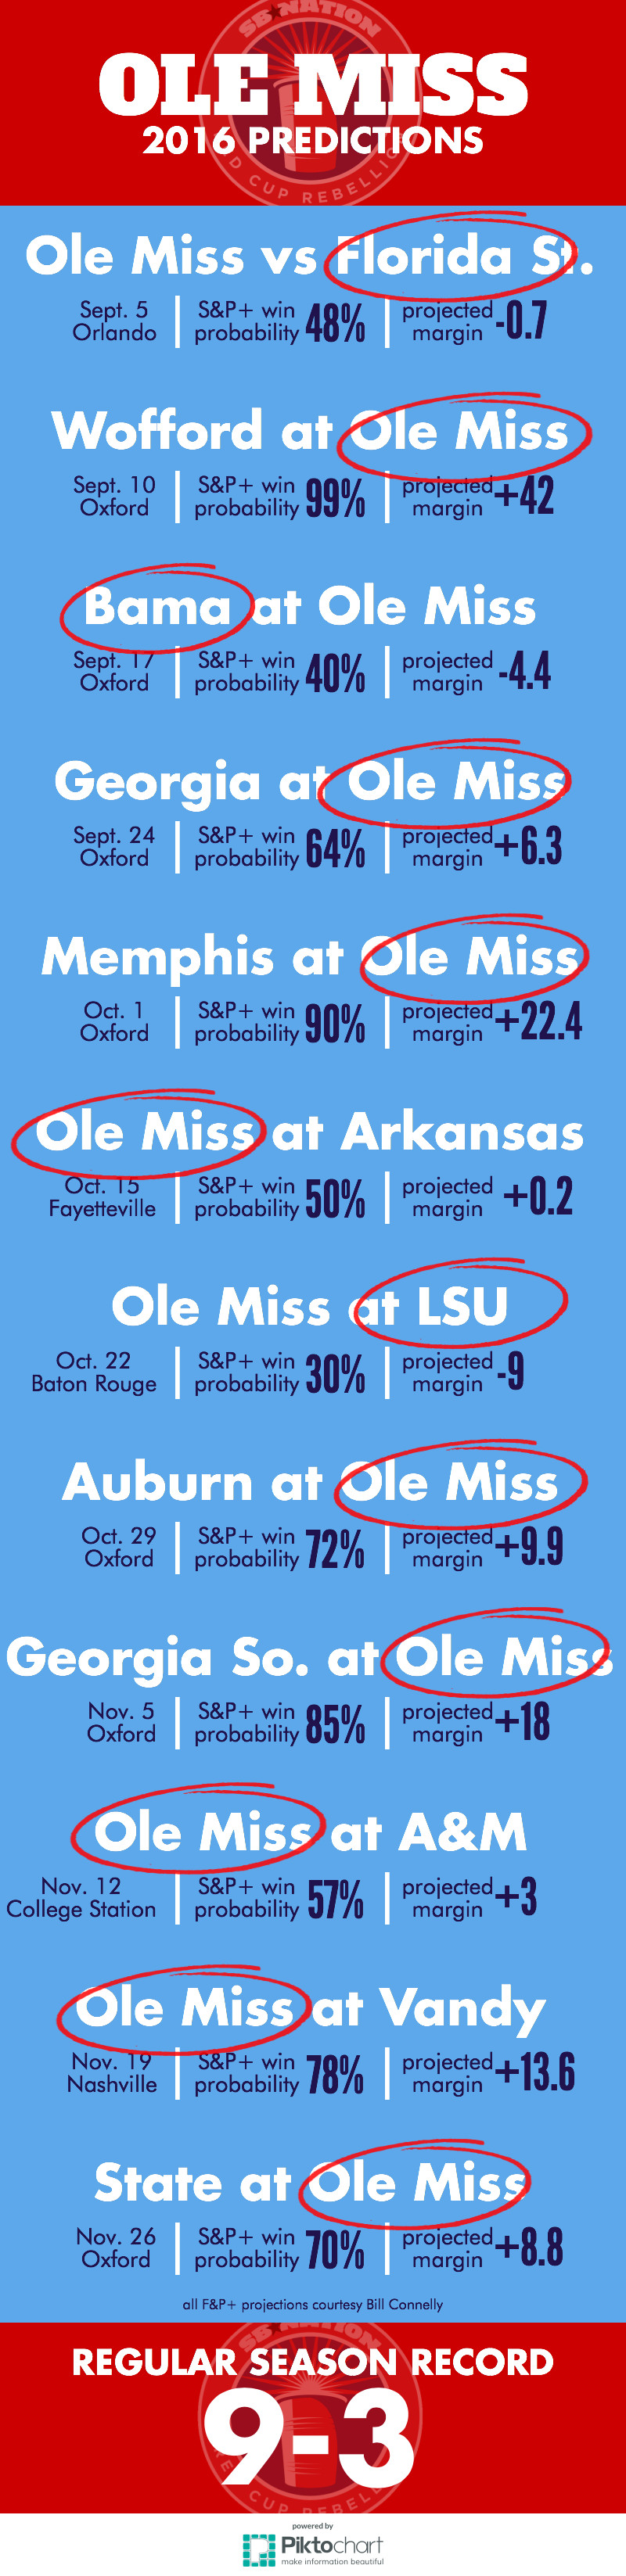 2016 Ole Miss schedule predictions